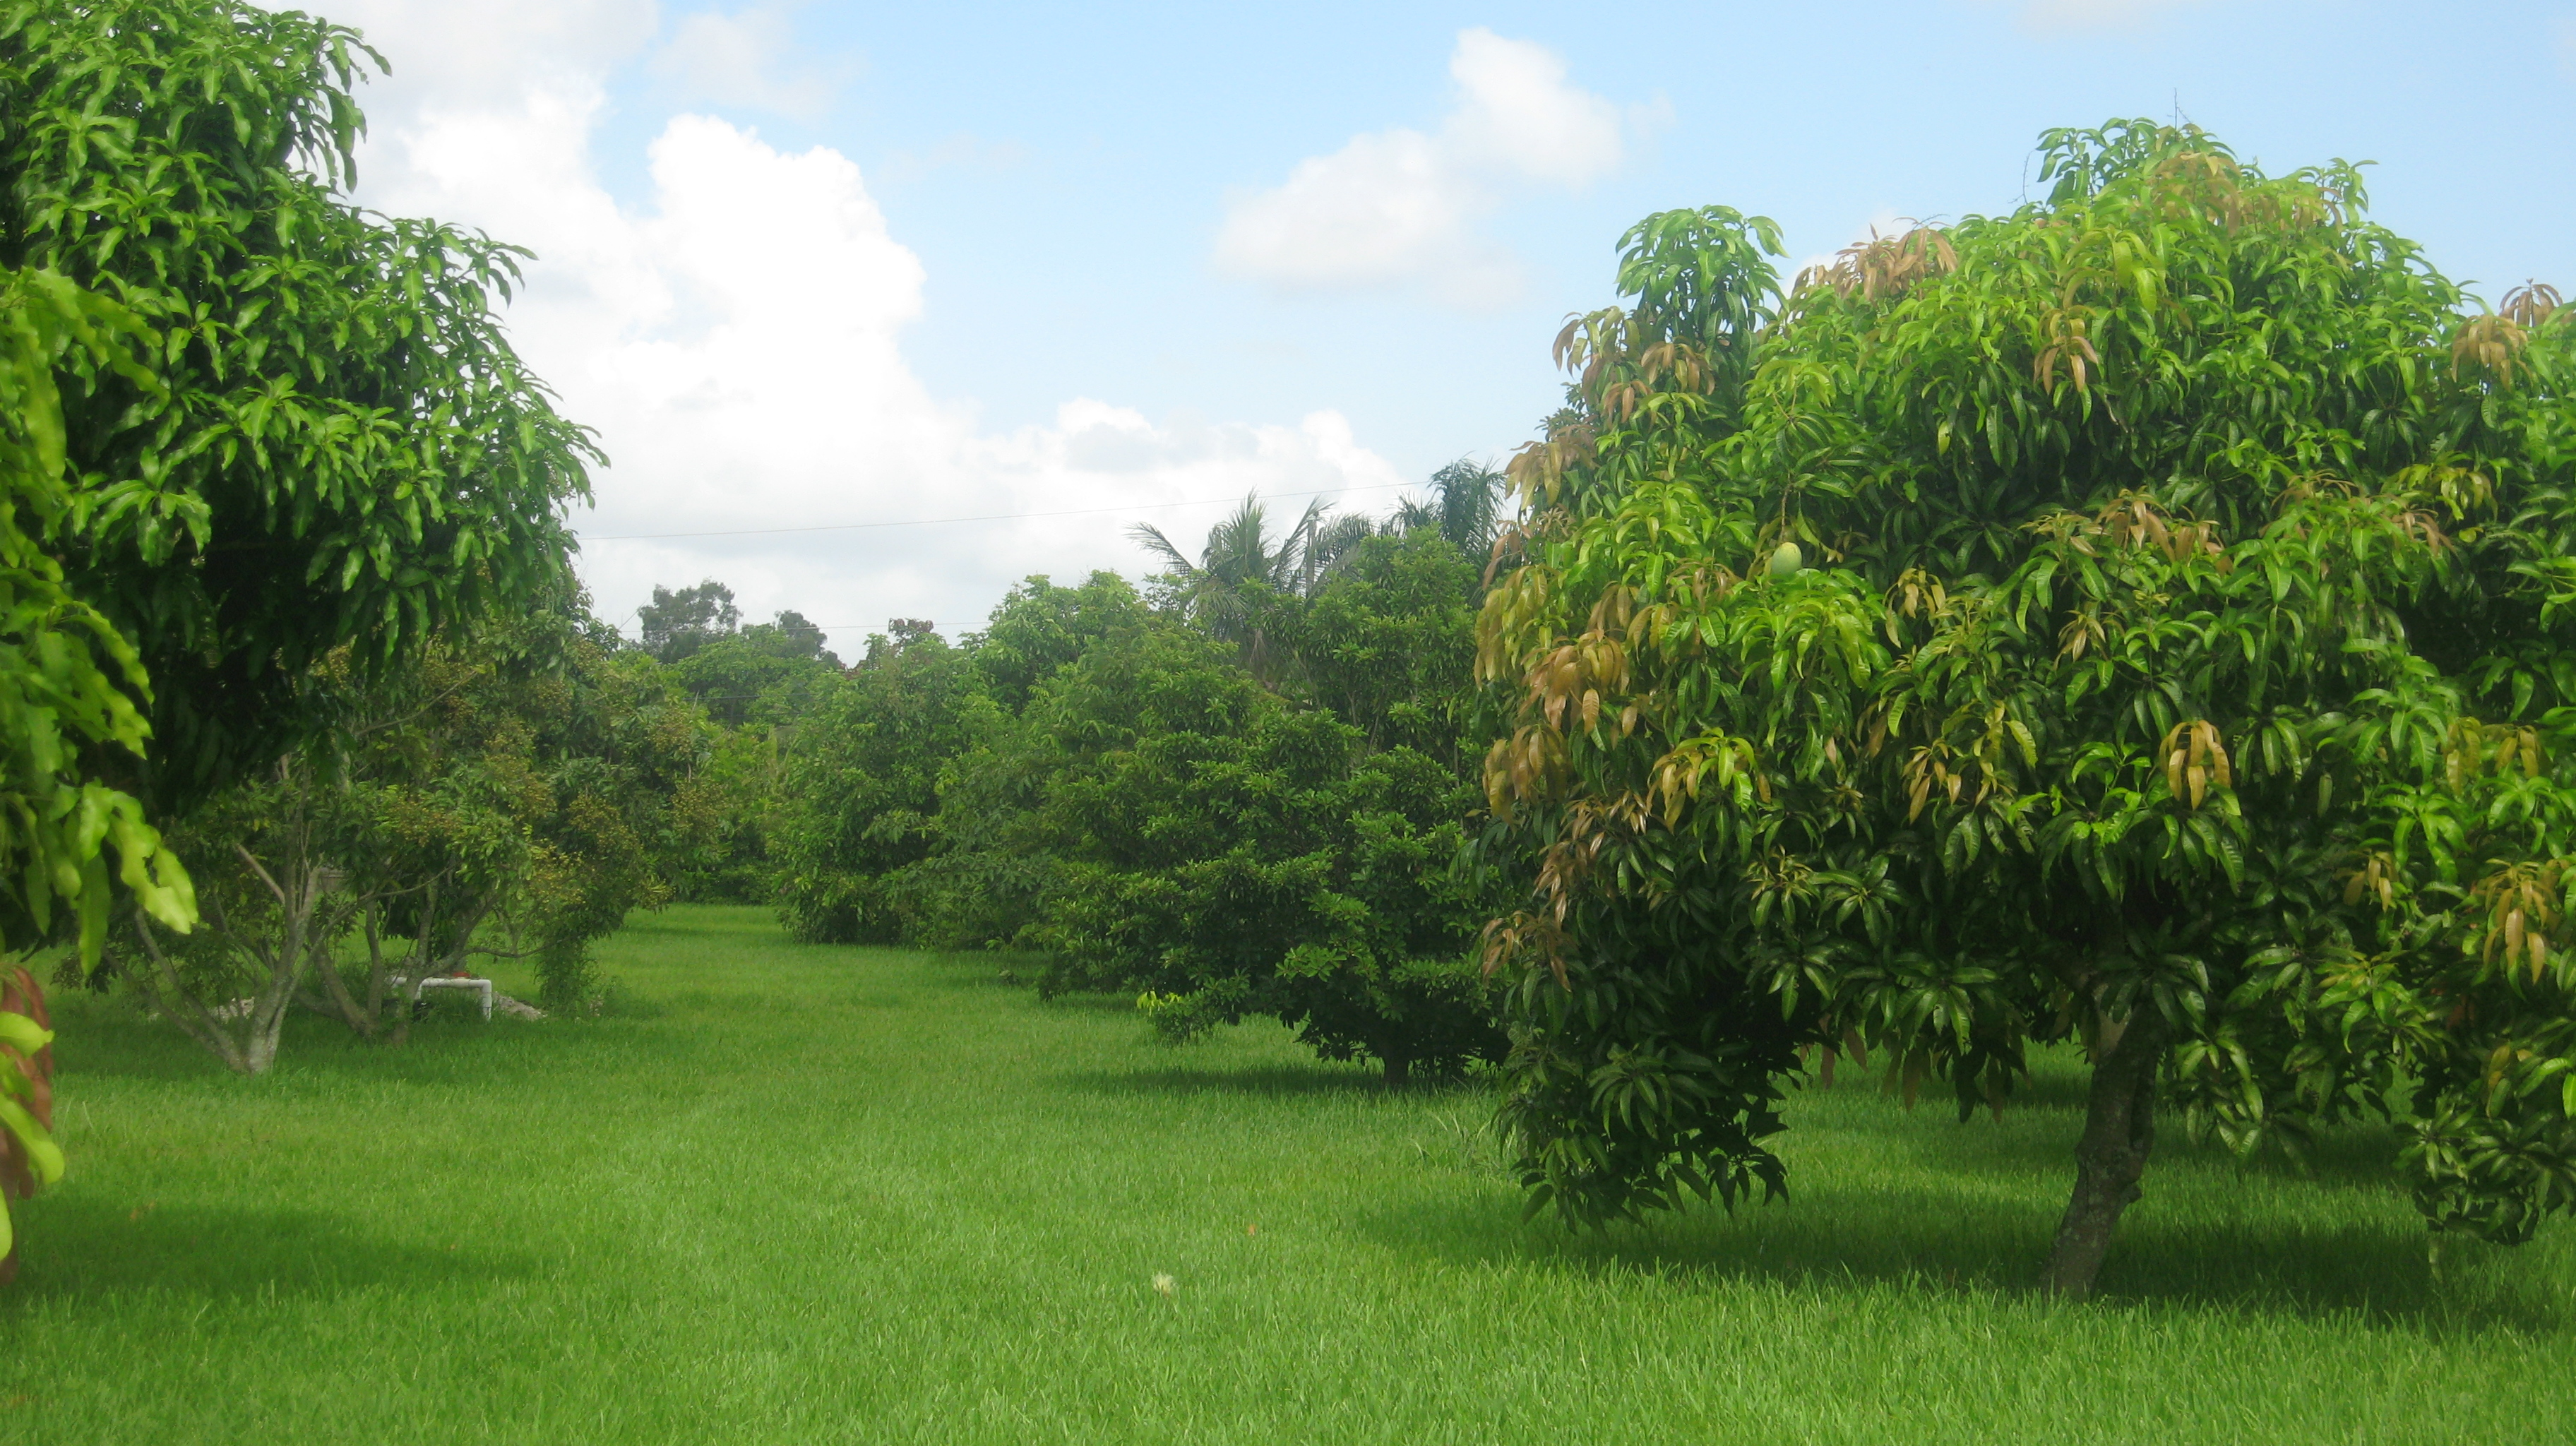 Ashram gardens and fruit trees